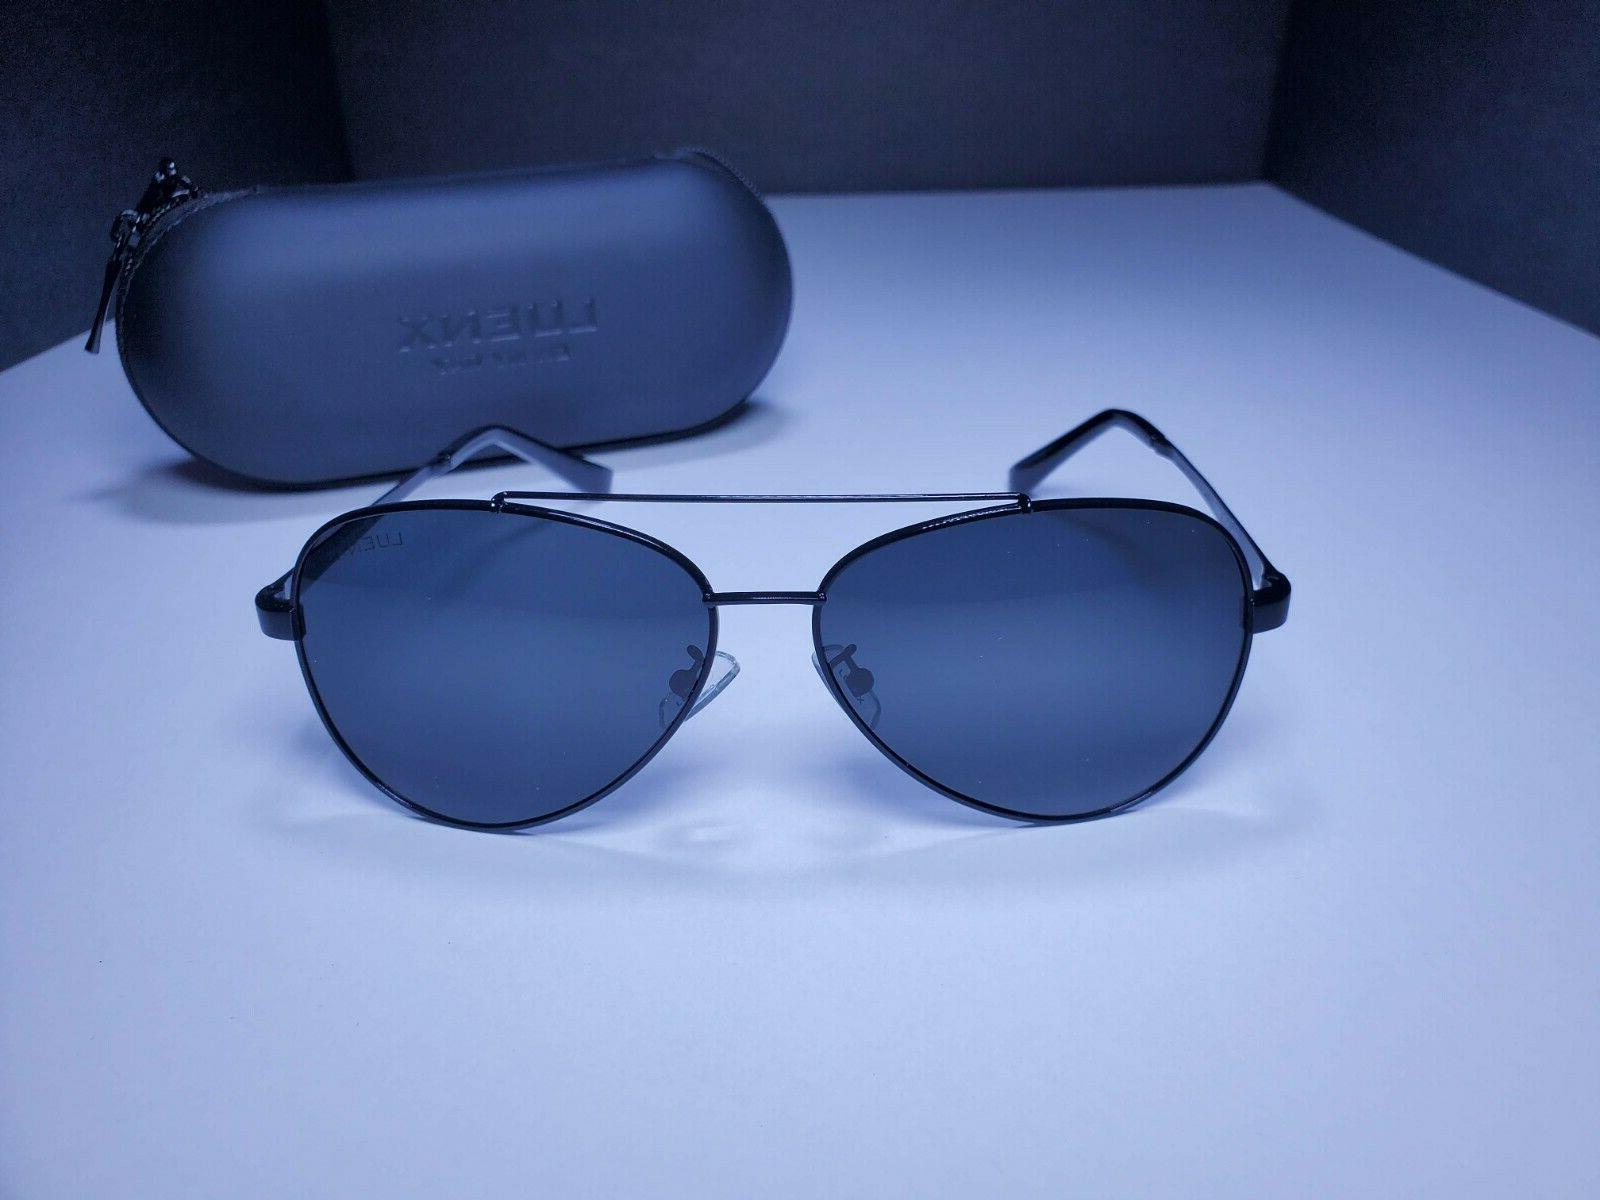 New Aviator Pilot Polarized Sunglasses On My